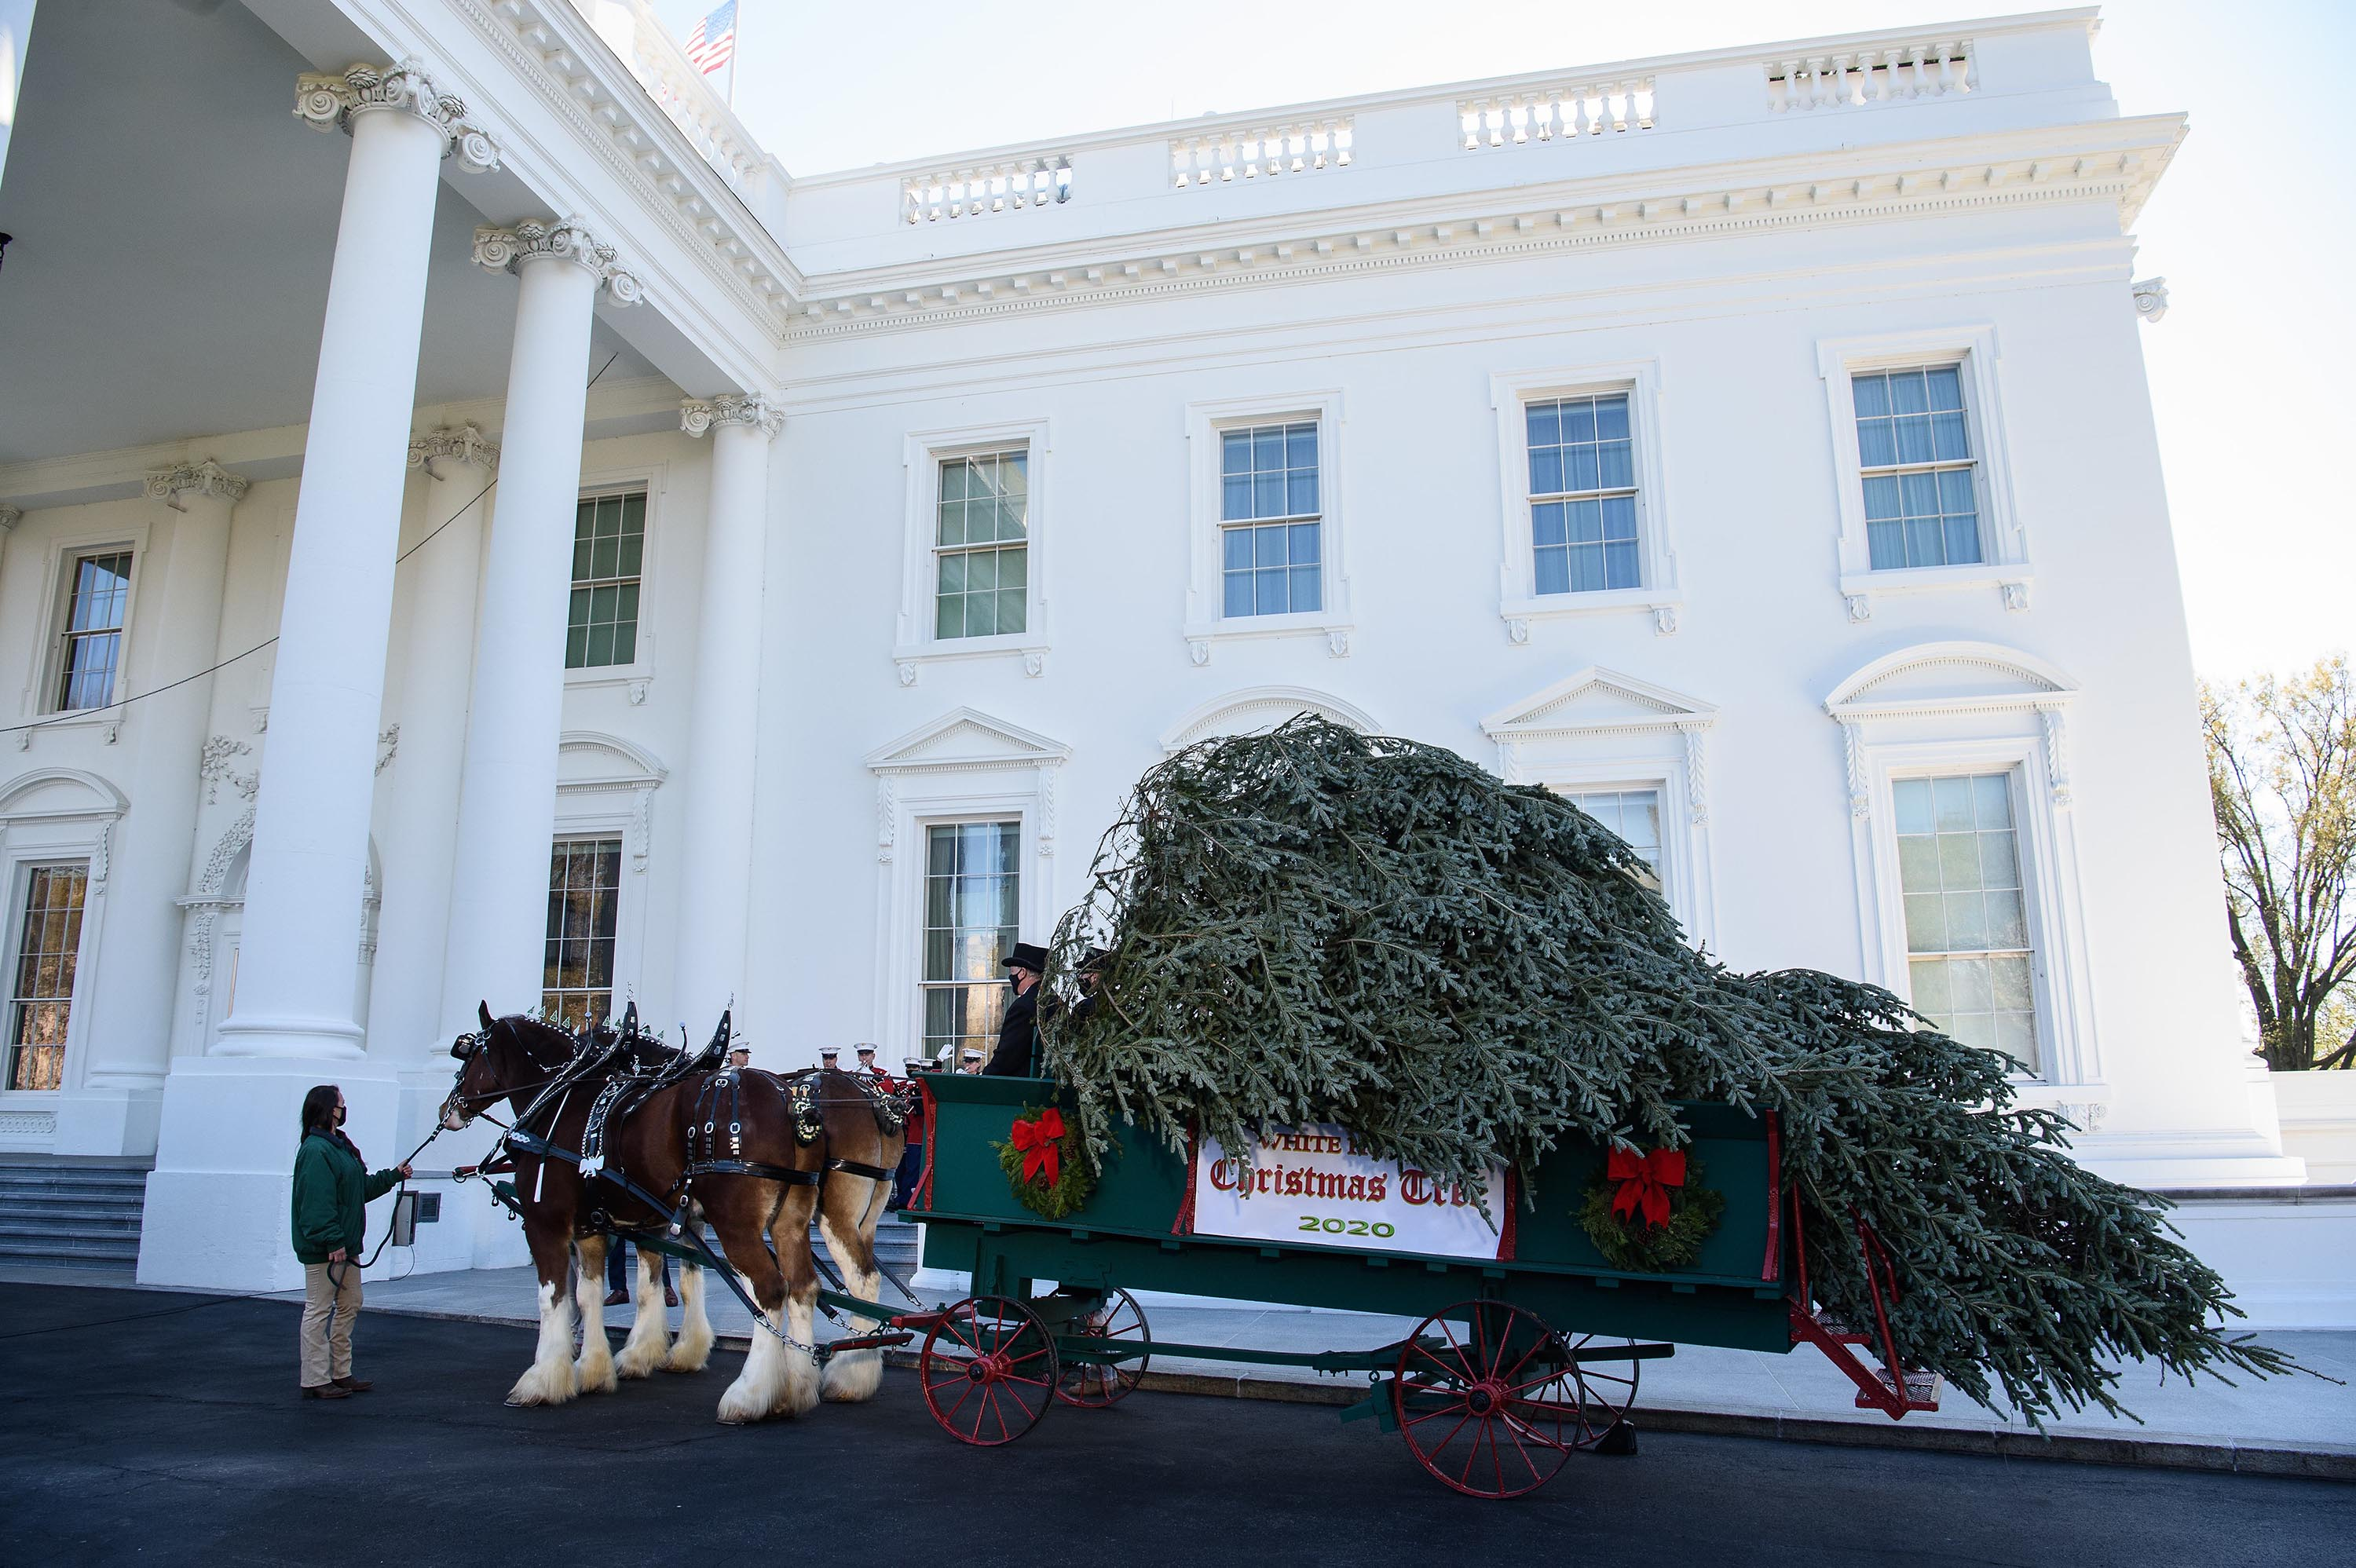 White House Christmas tree arrives, continuing tradition amid Covid-19 and election disputes